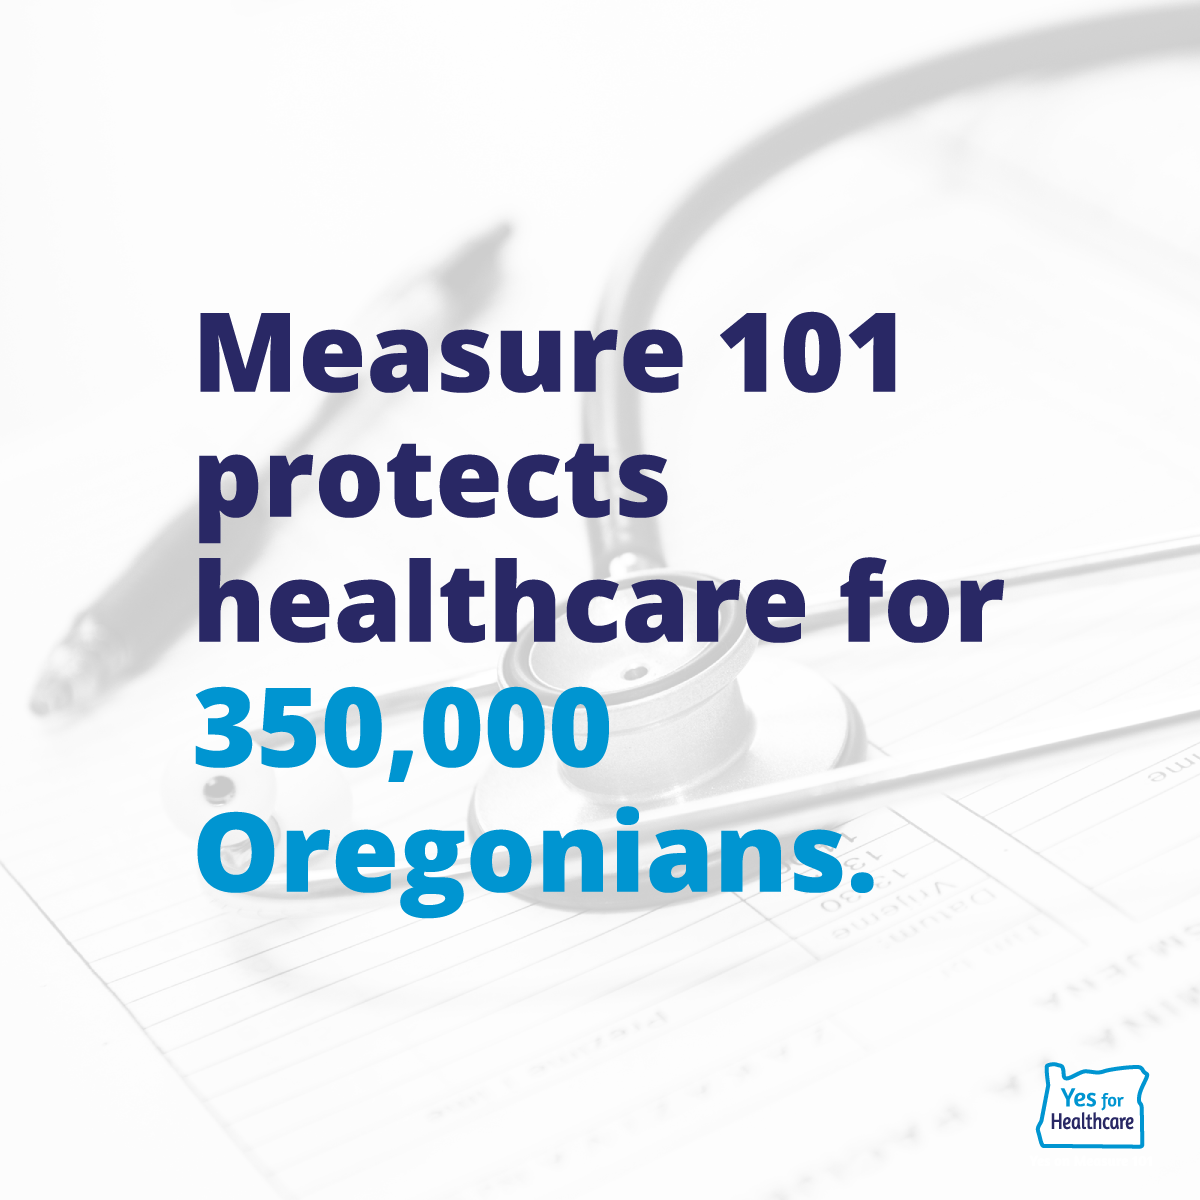 Measure 101 protects healthcare for 350,000 Oregonians.